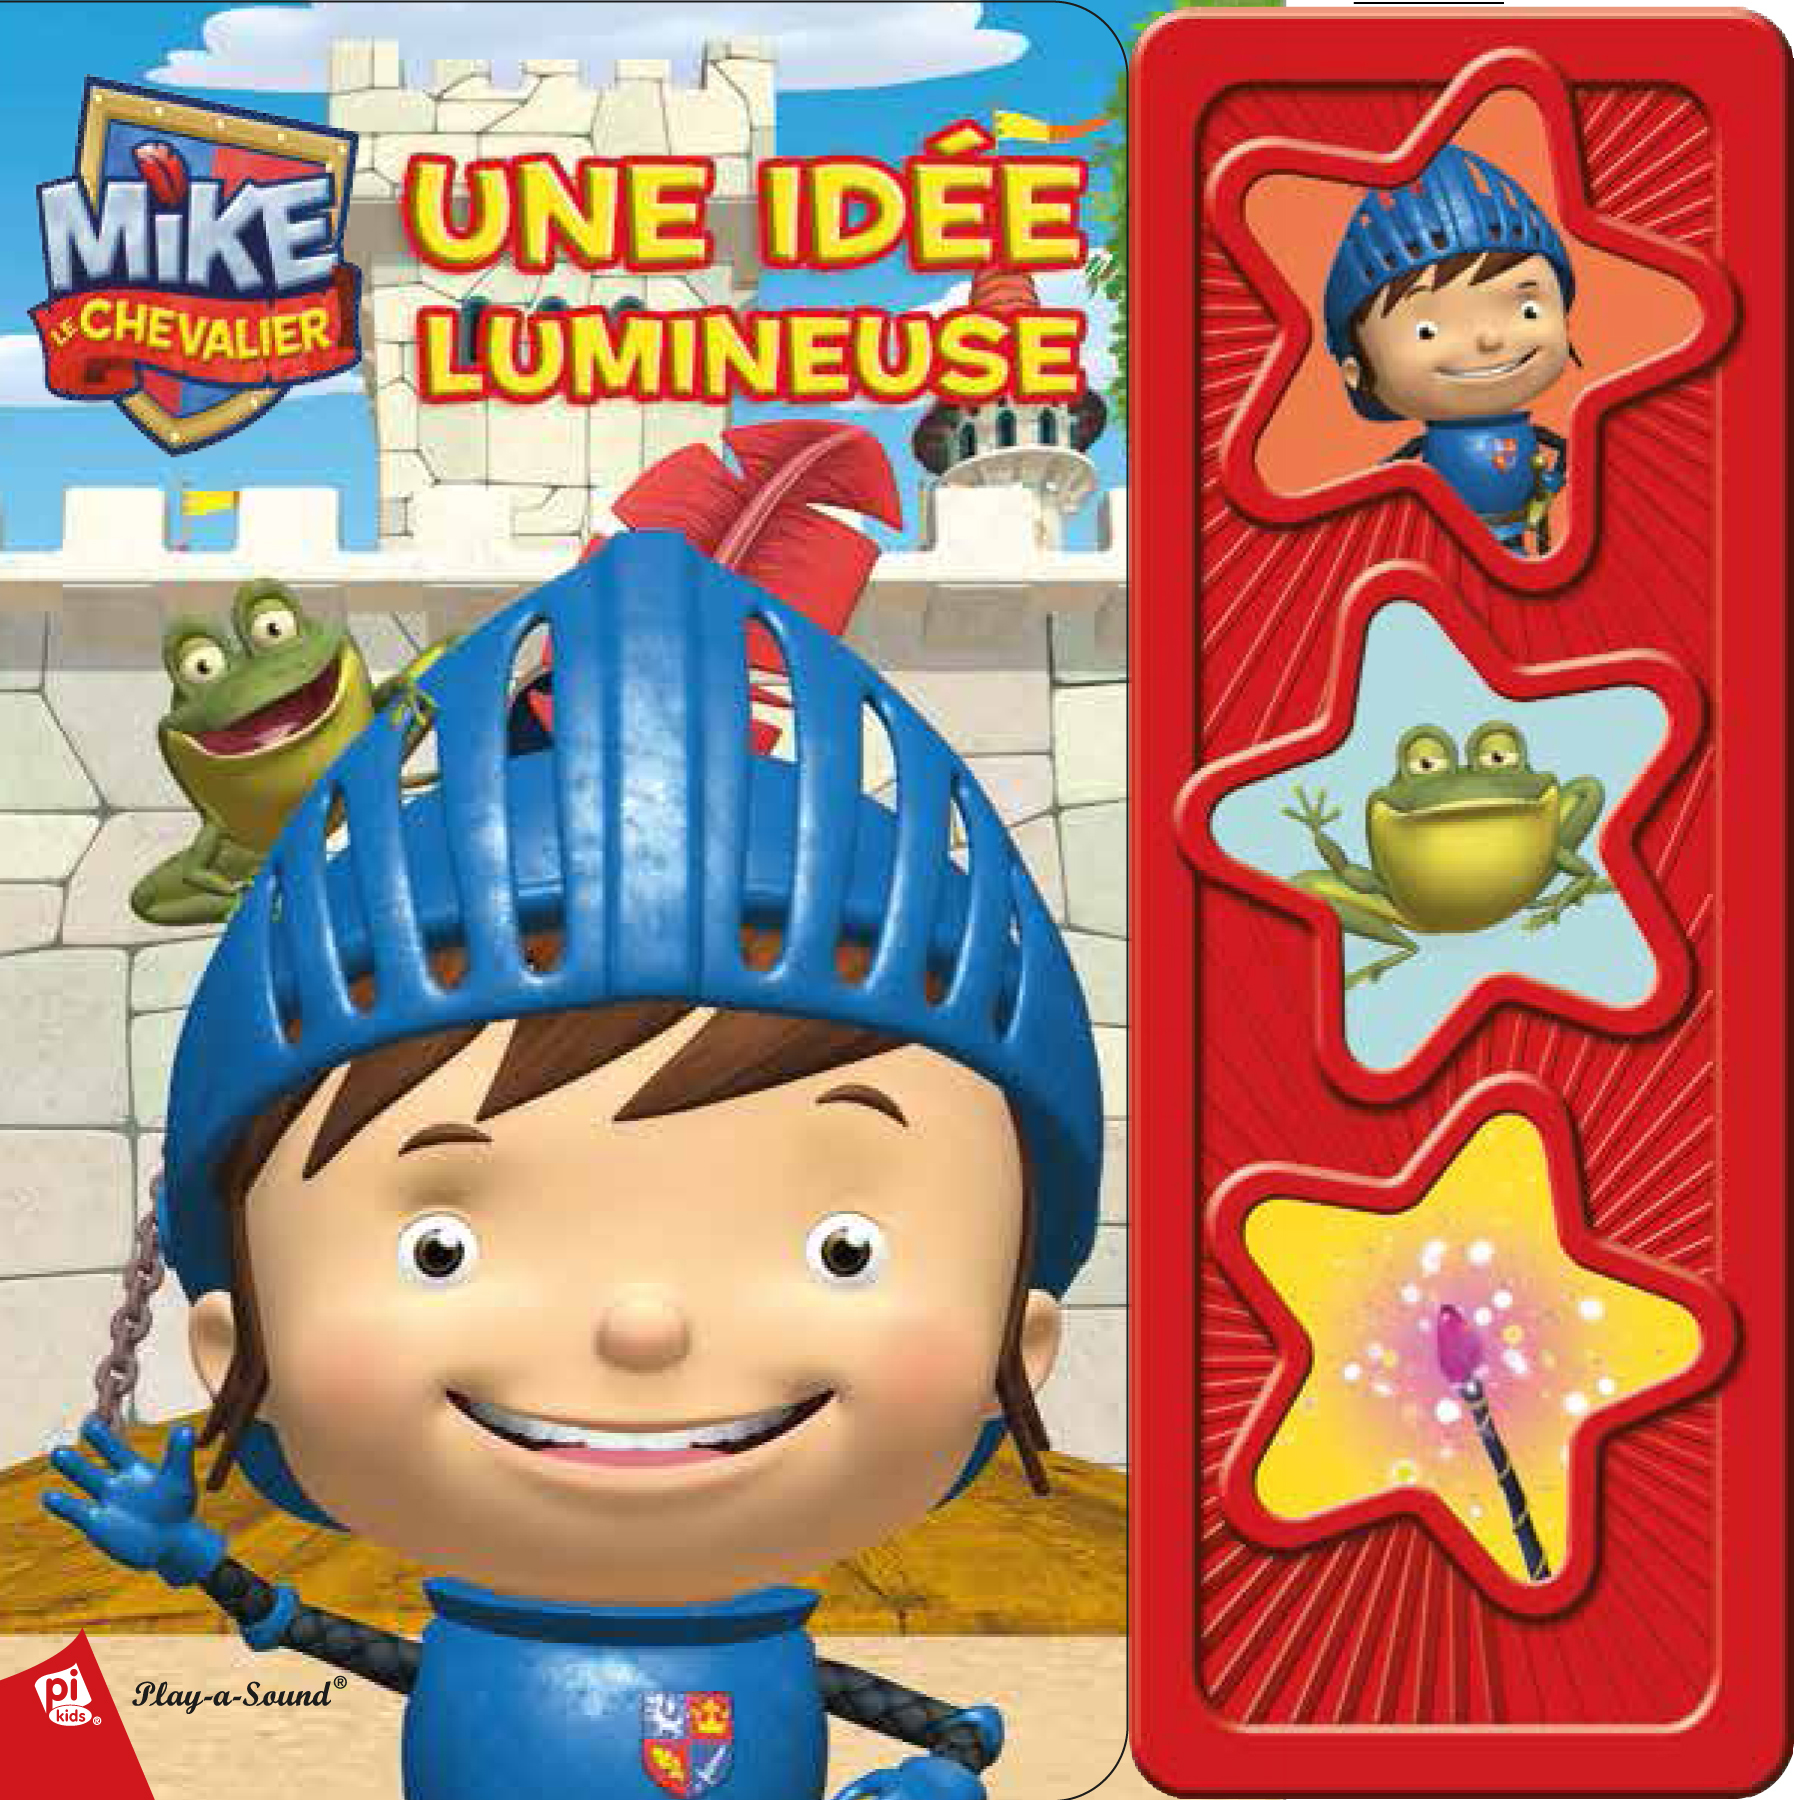 MIKE LE CHEVALIER - UNE IDEE LUMINEUSE